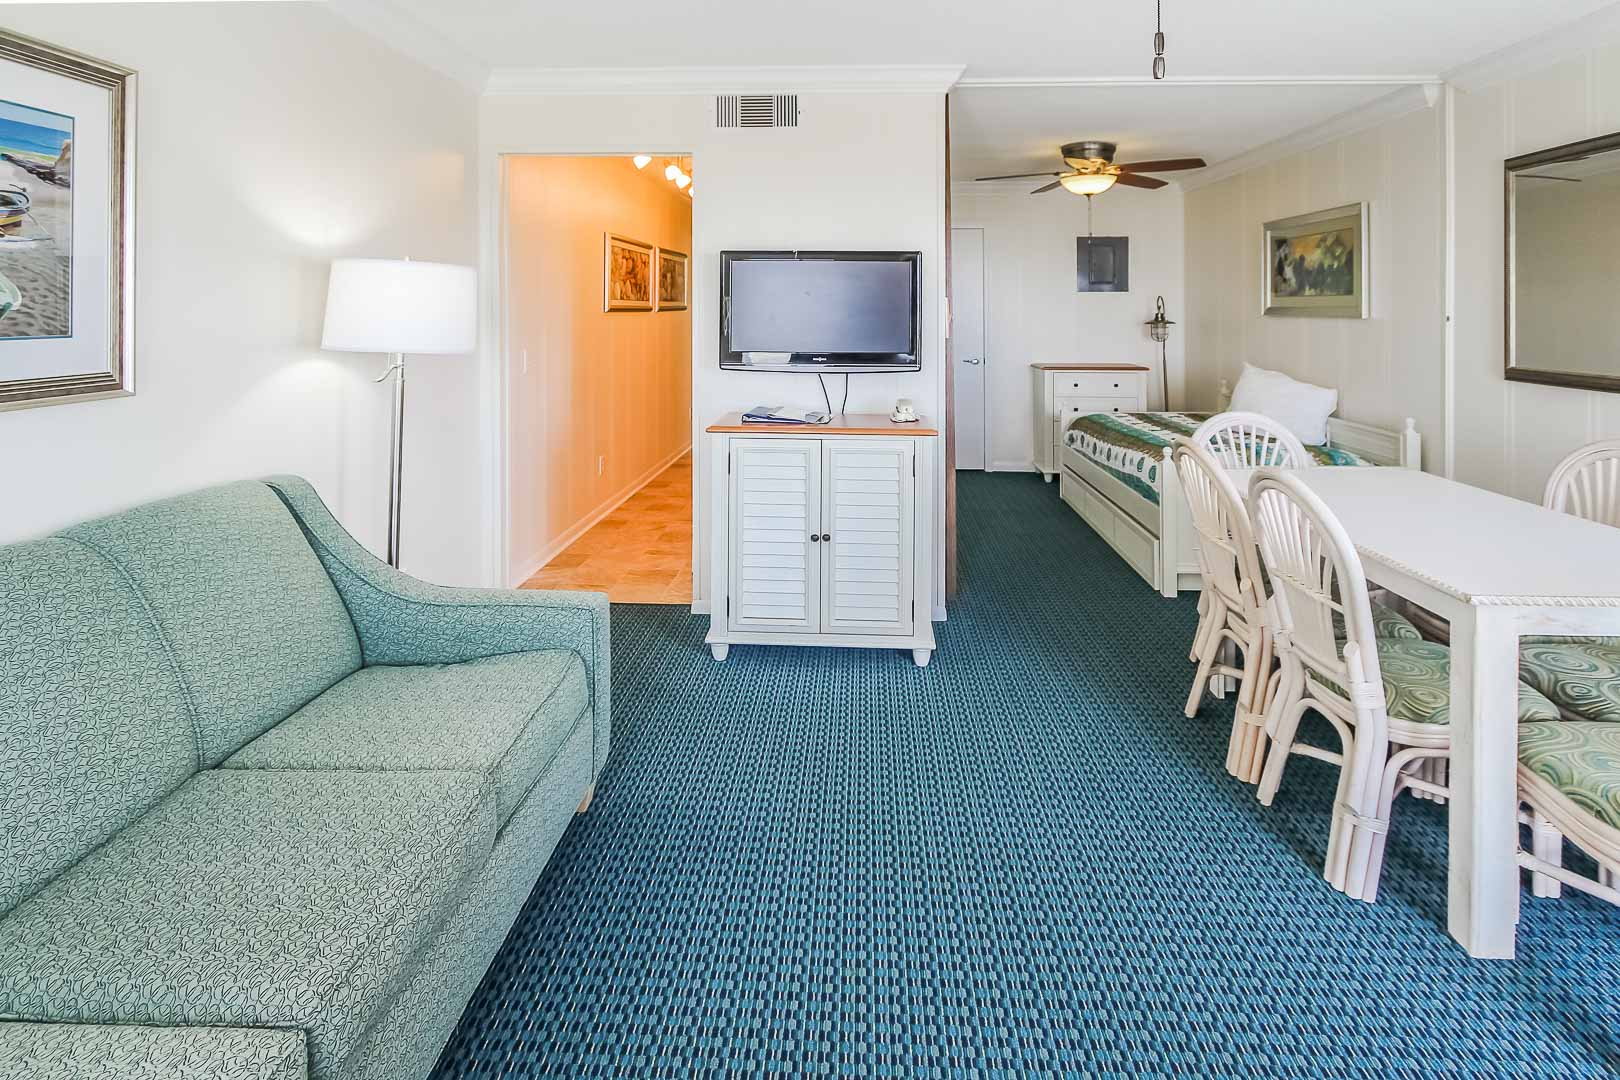 A cozy living room area at VRI's A Place at the Beach III in North Carolina